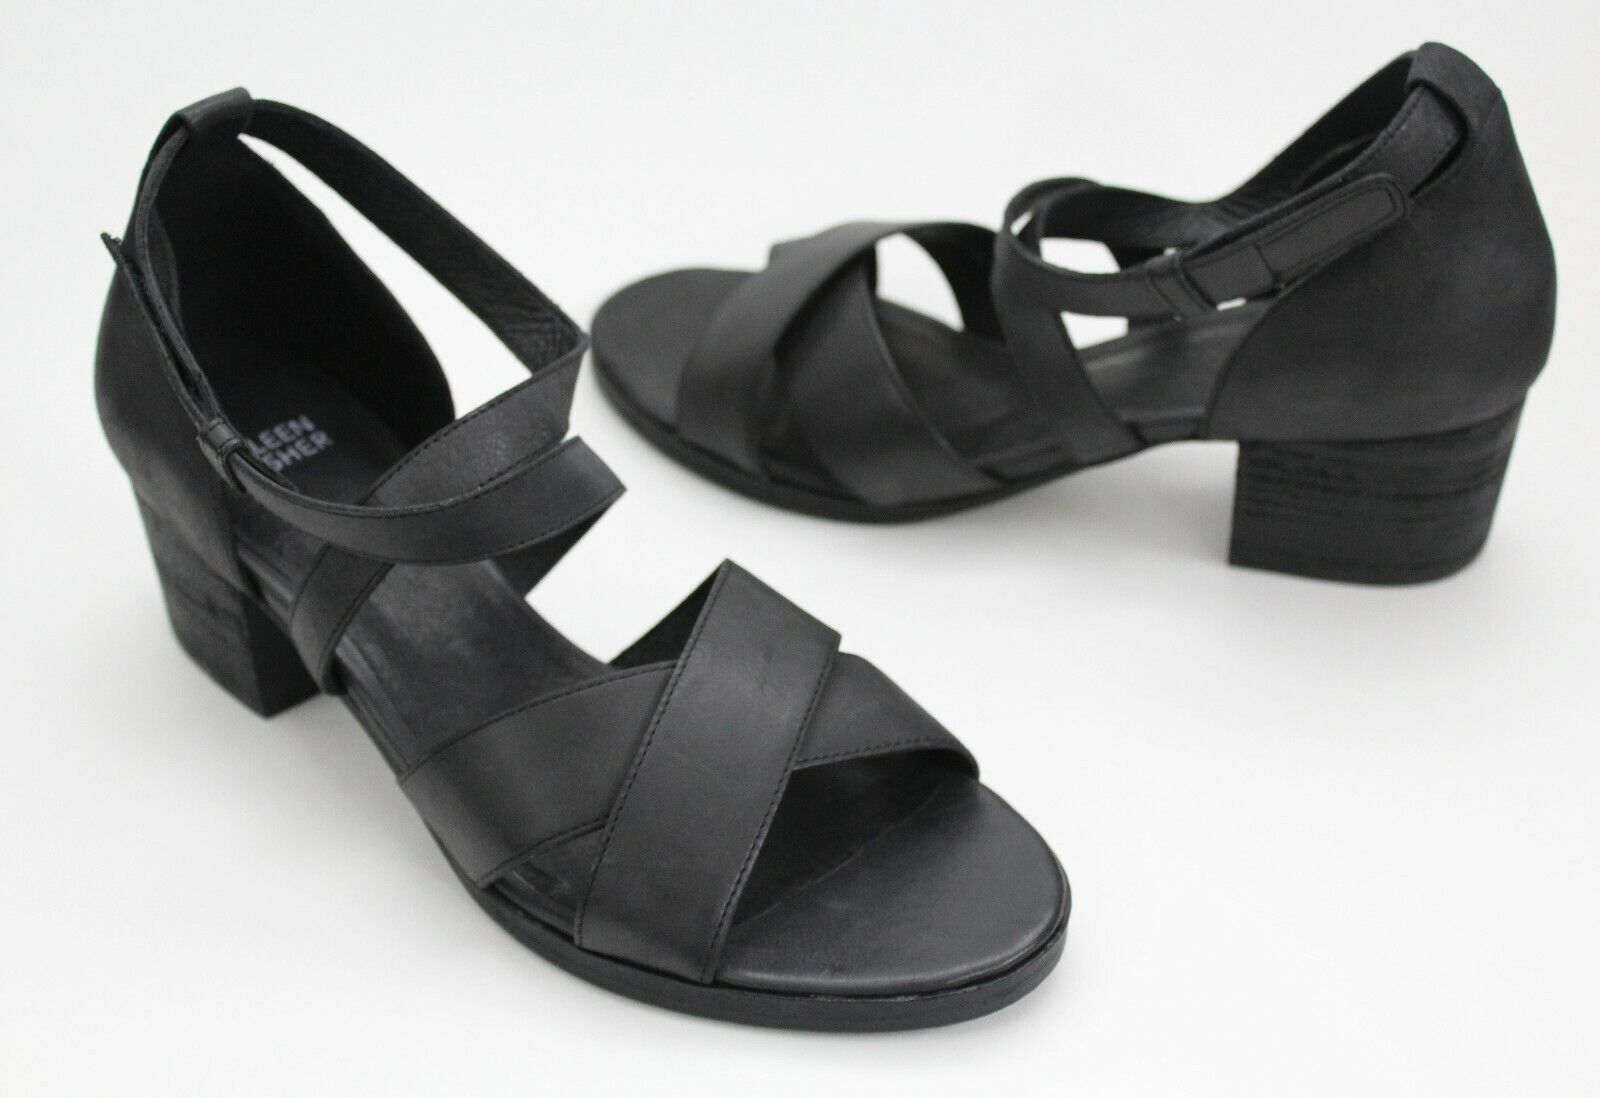 NEWEileen Fisher Kerby Sandal Criss Cross Black Leather Ankle Strap-sZ 8.5 9.5